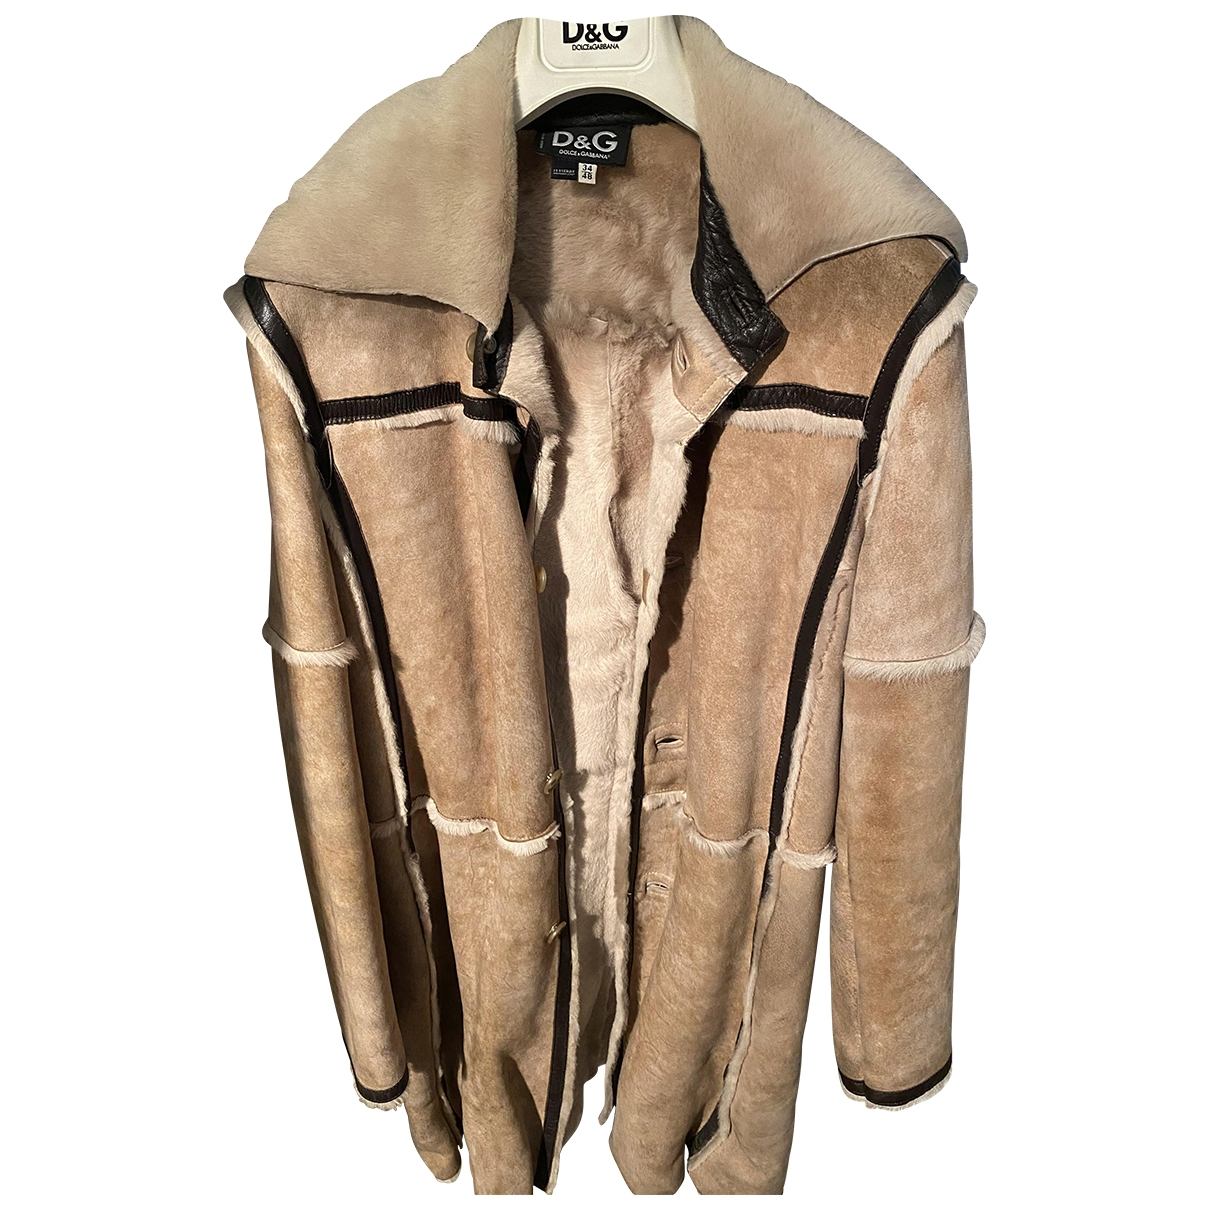 D&g \N Beige Suede Leather jacket for Women 48 IT